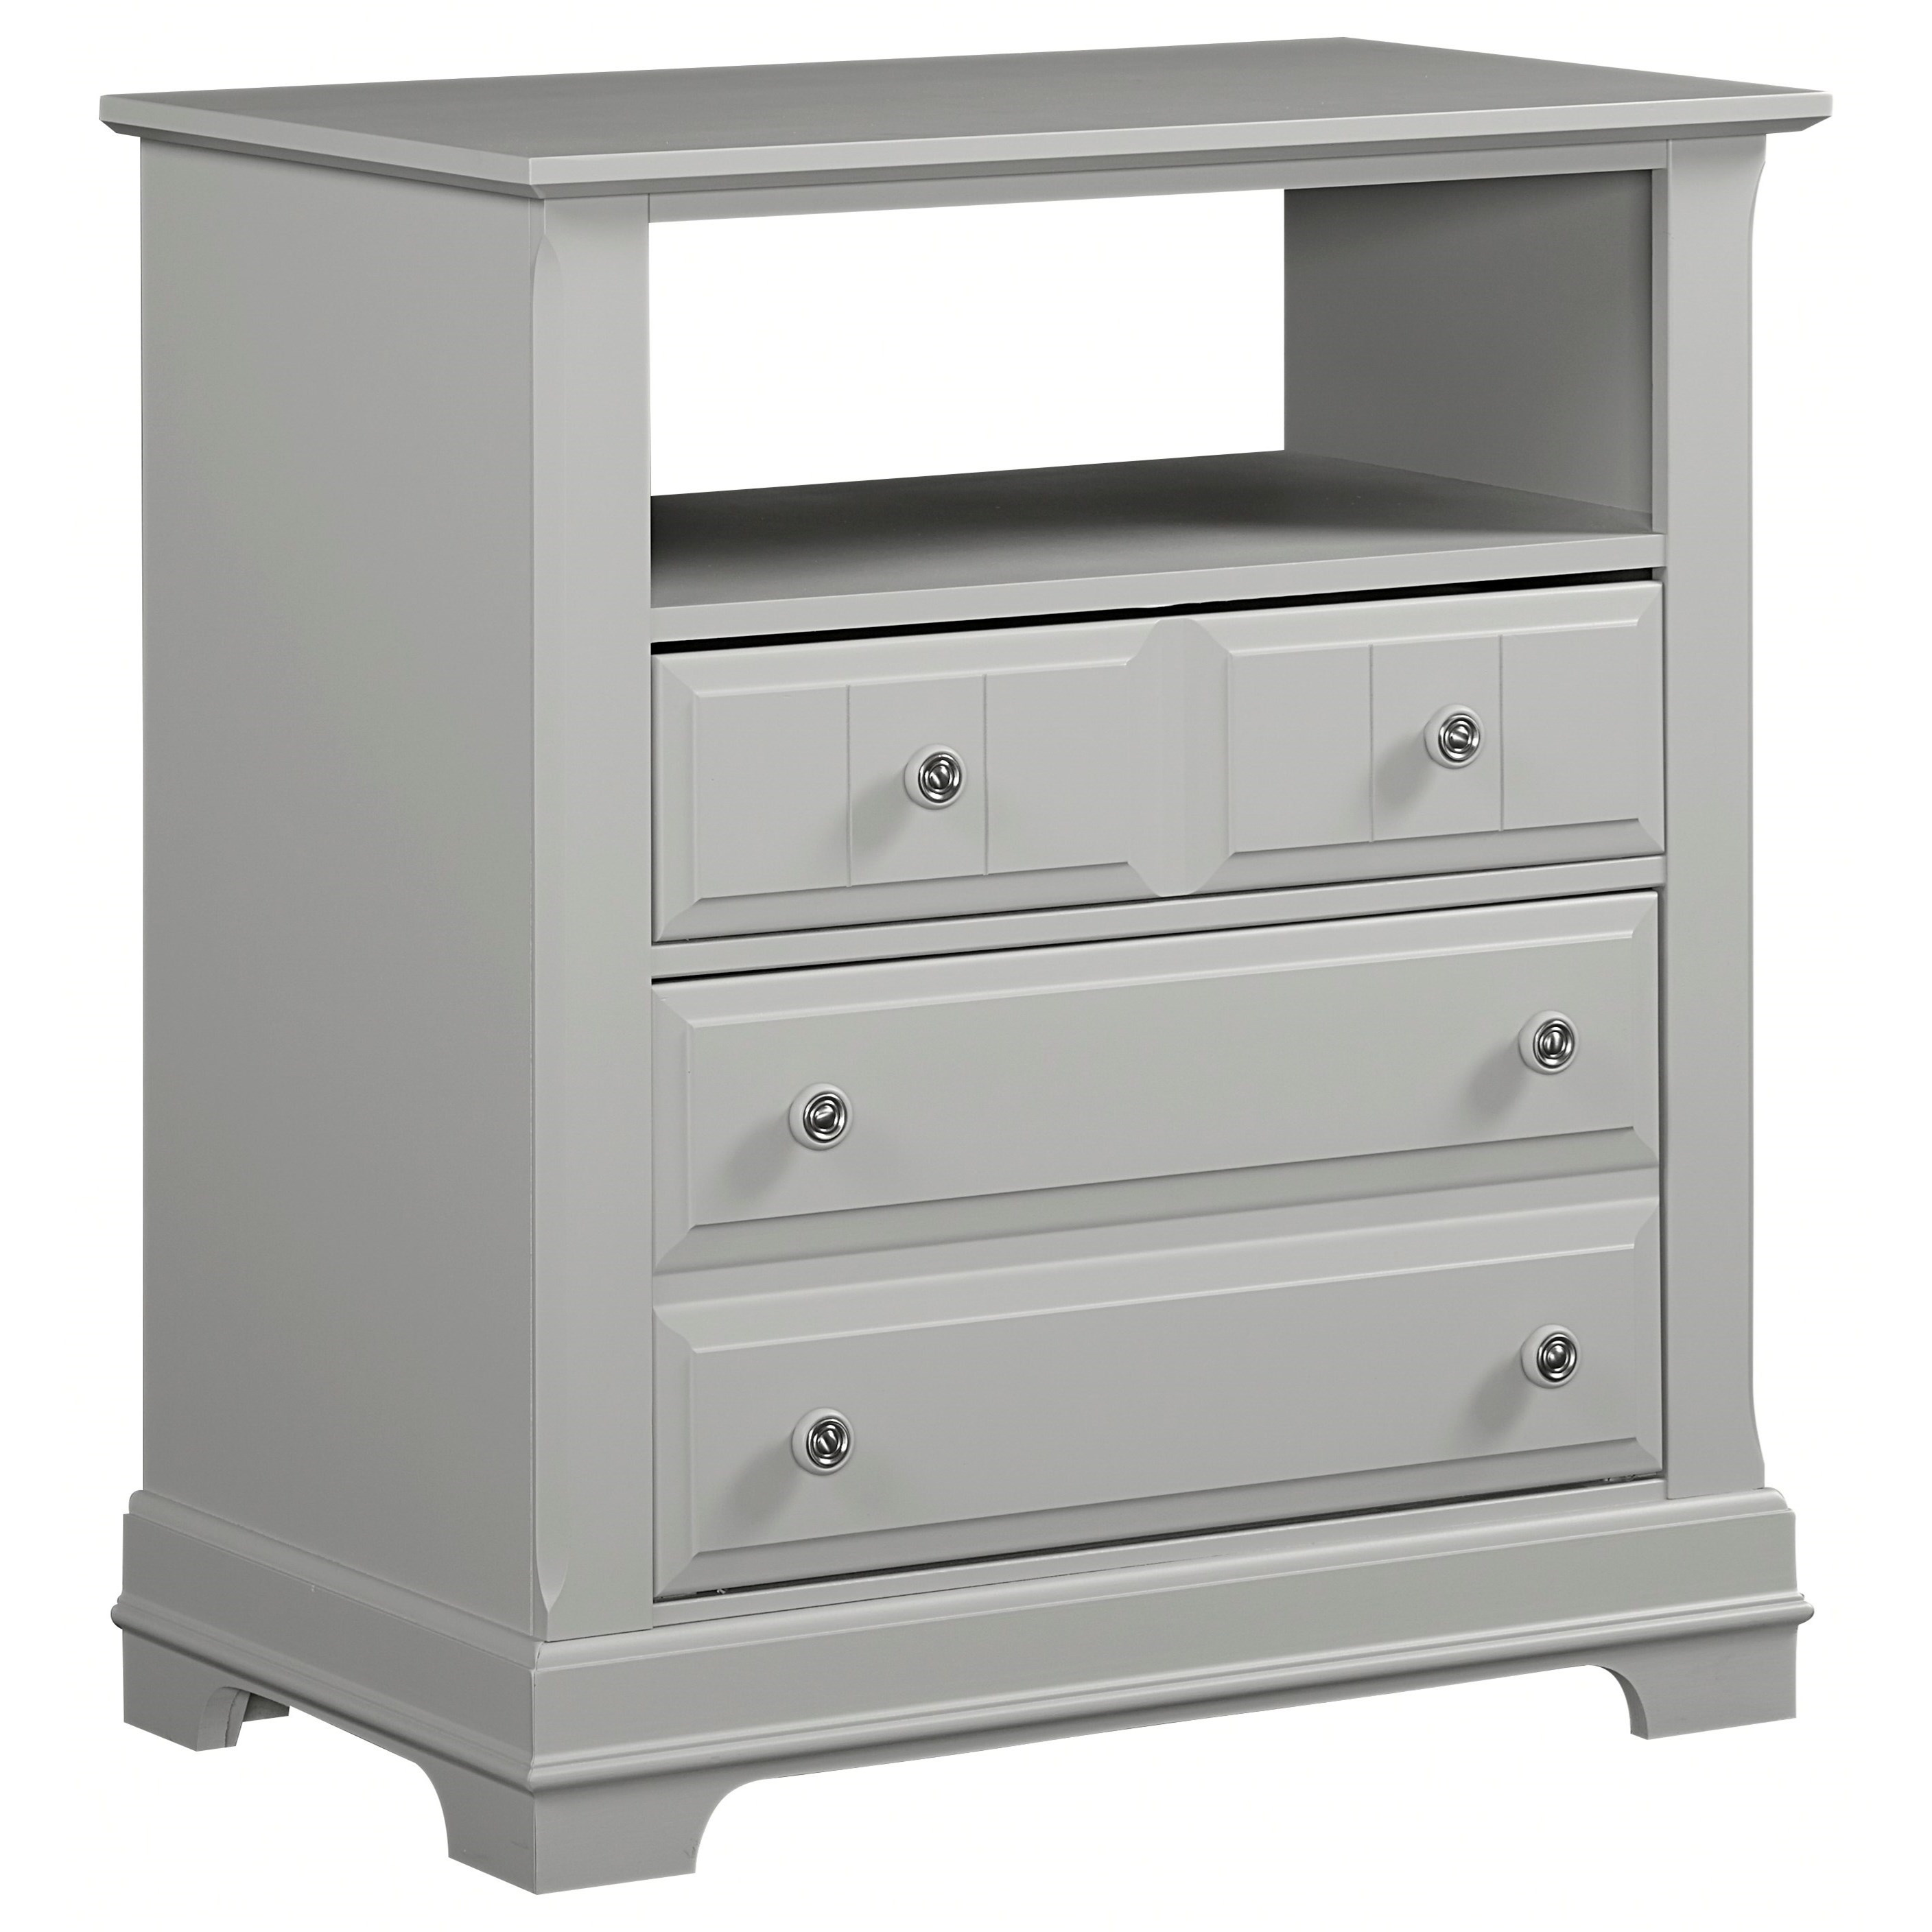 Media Cabinet - 2 Drawers, Open Shelf